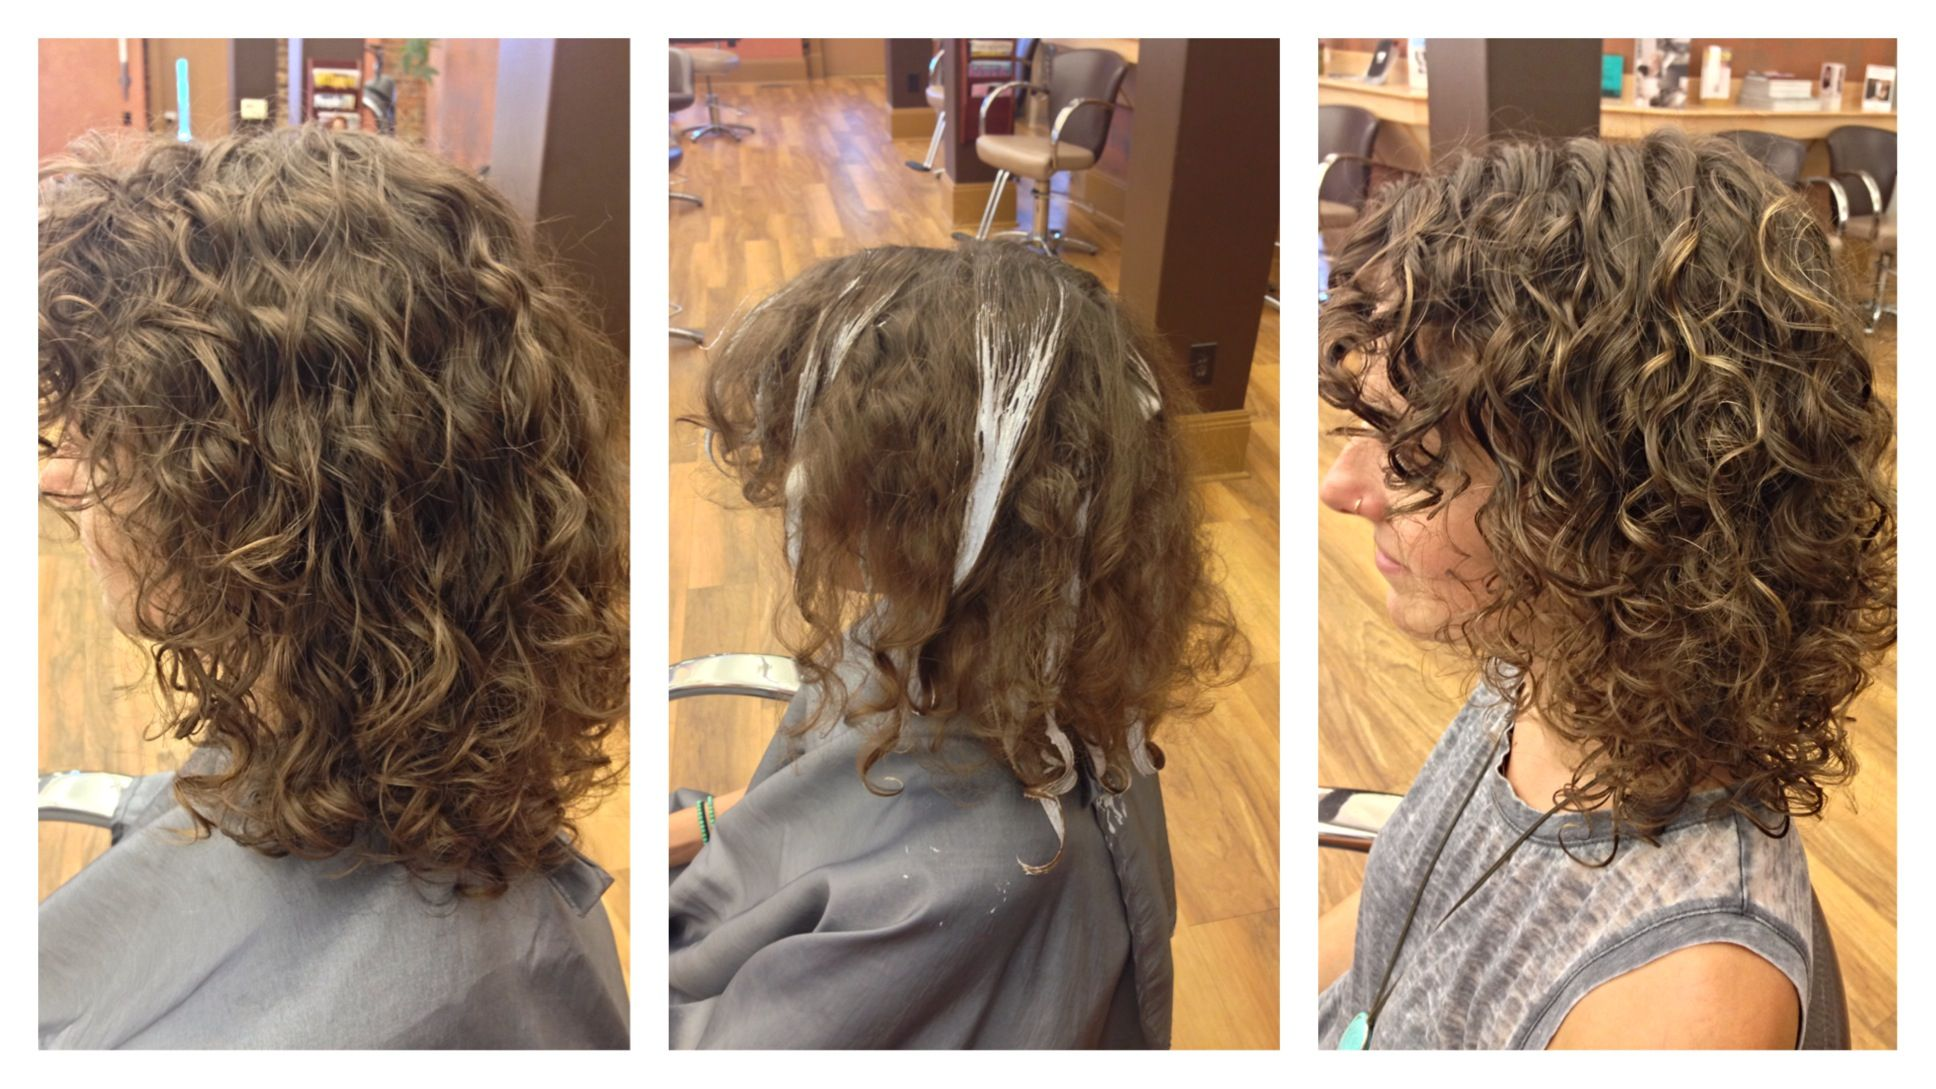 Before During And After Balayage Highlights In Curly Hair Subtle And Natural Chakras Spa Green Highlights Curly Hair Curly Hair Styles Balayage Highlights